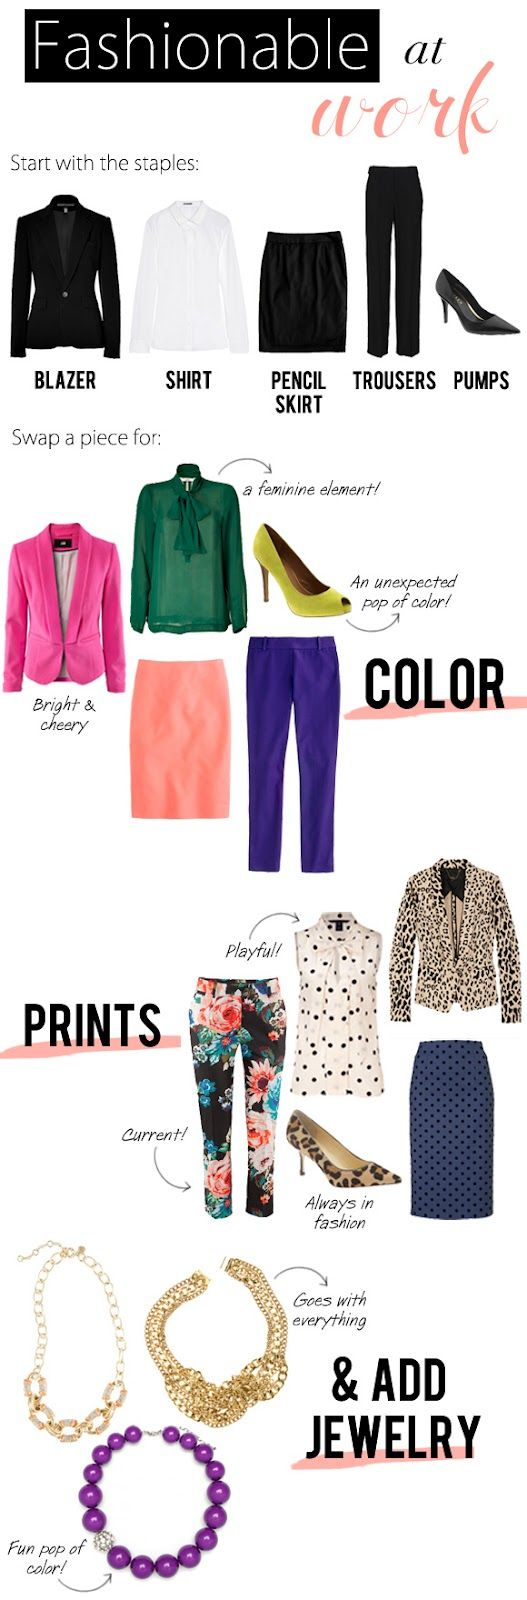 Tips on how to be fashionable, yet professional at work!